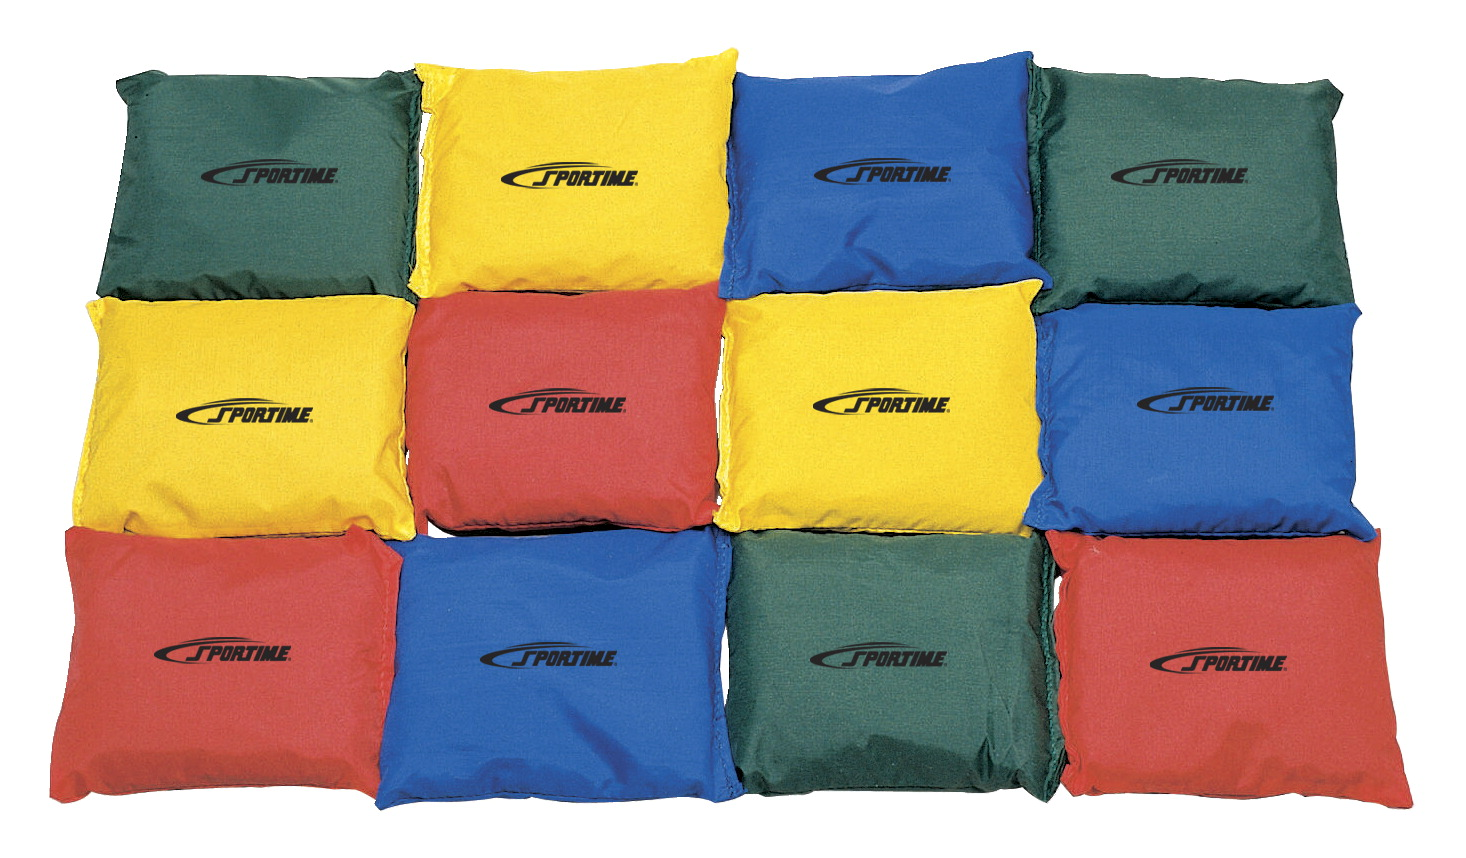 Sportime Nylon Square Beanbags, 4 Inches, Set of 12